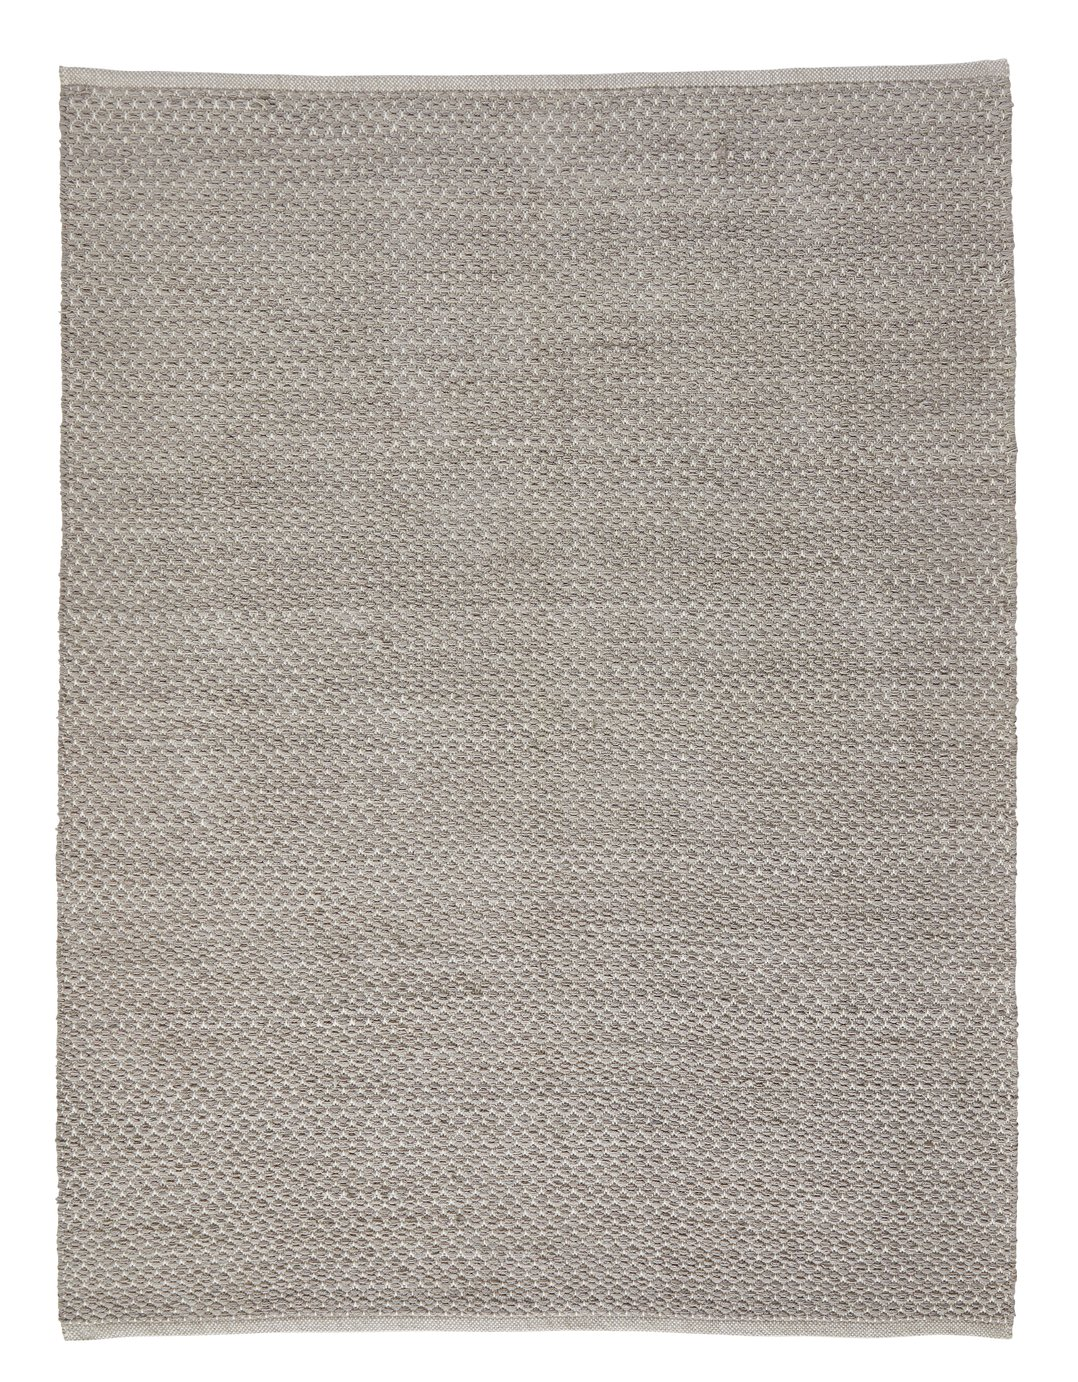 Argos Home Global Diamond Flatweave Rug - 120x160cm - Grey